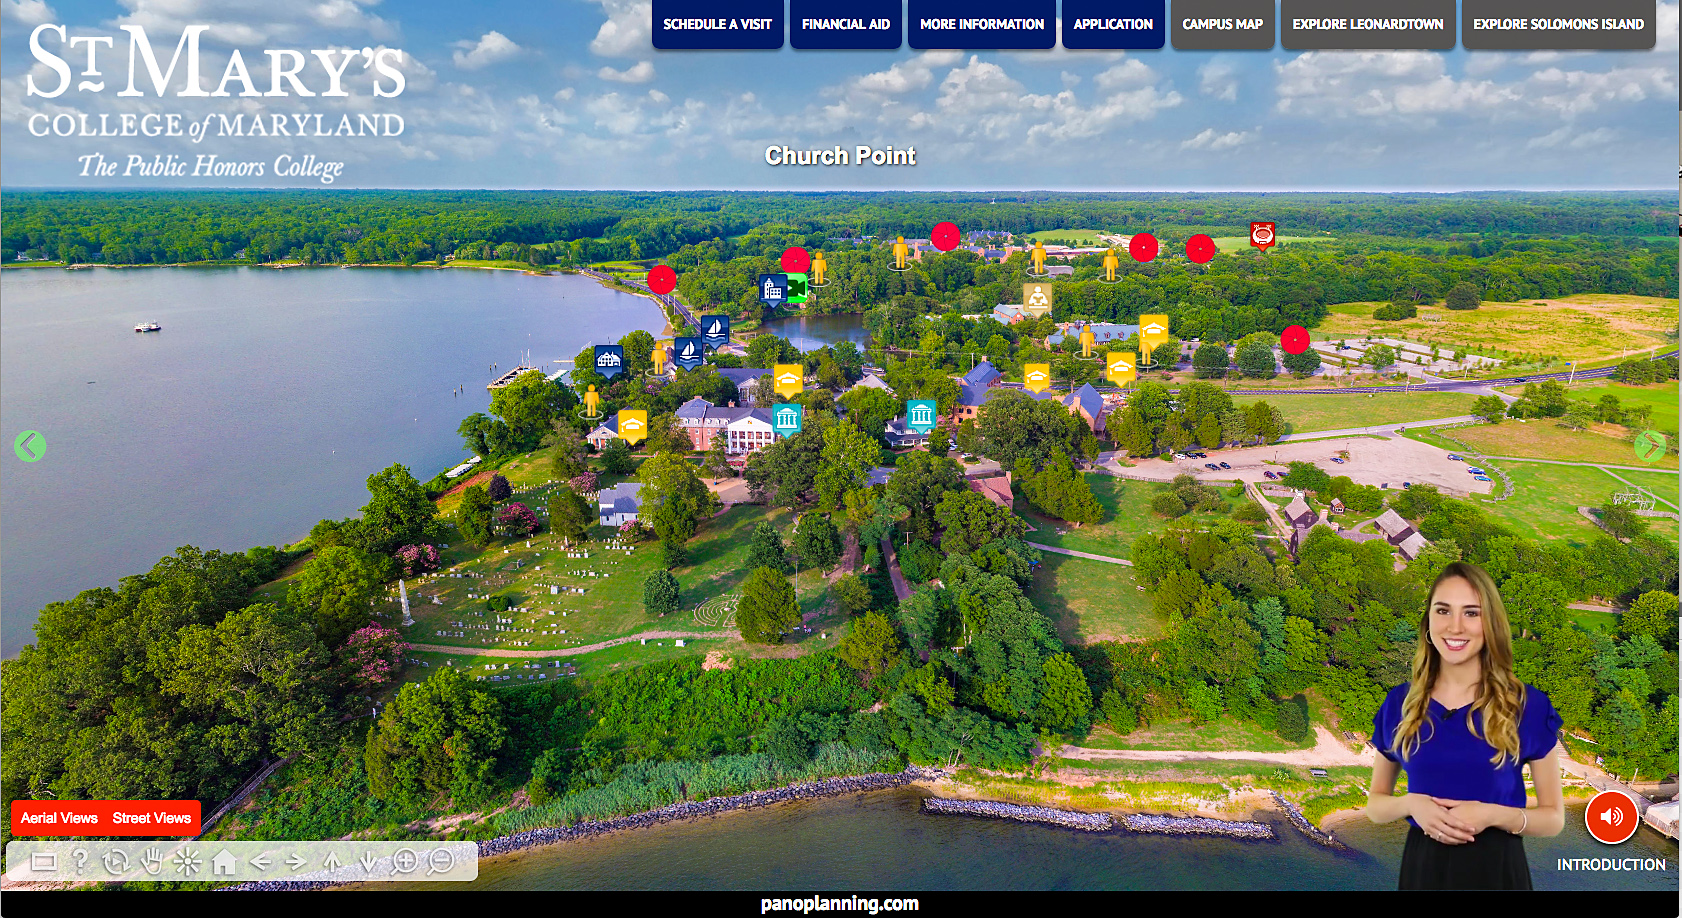 Virtual Discovery Tool landing page for St. Mary's College